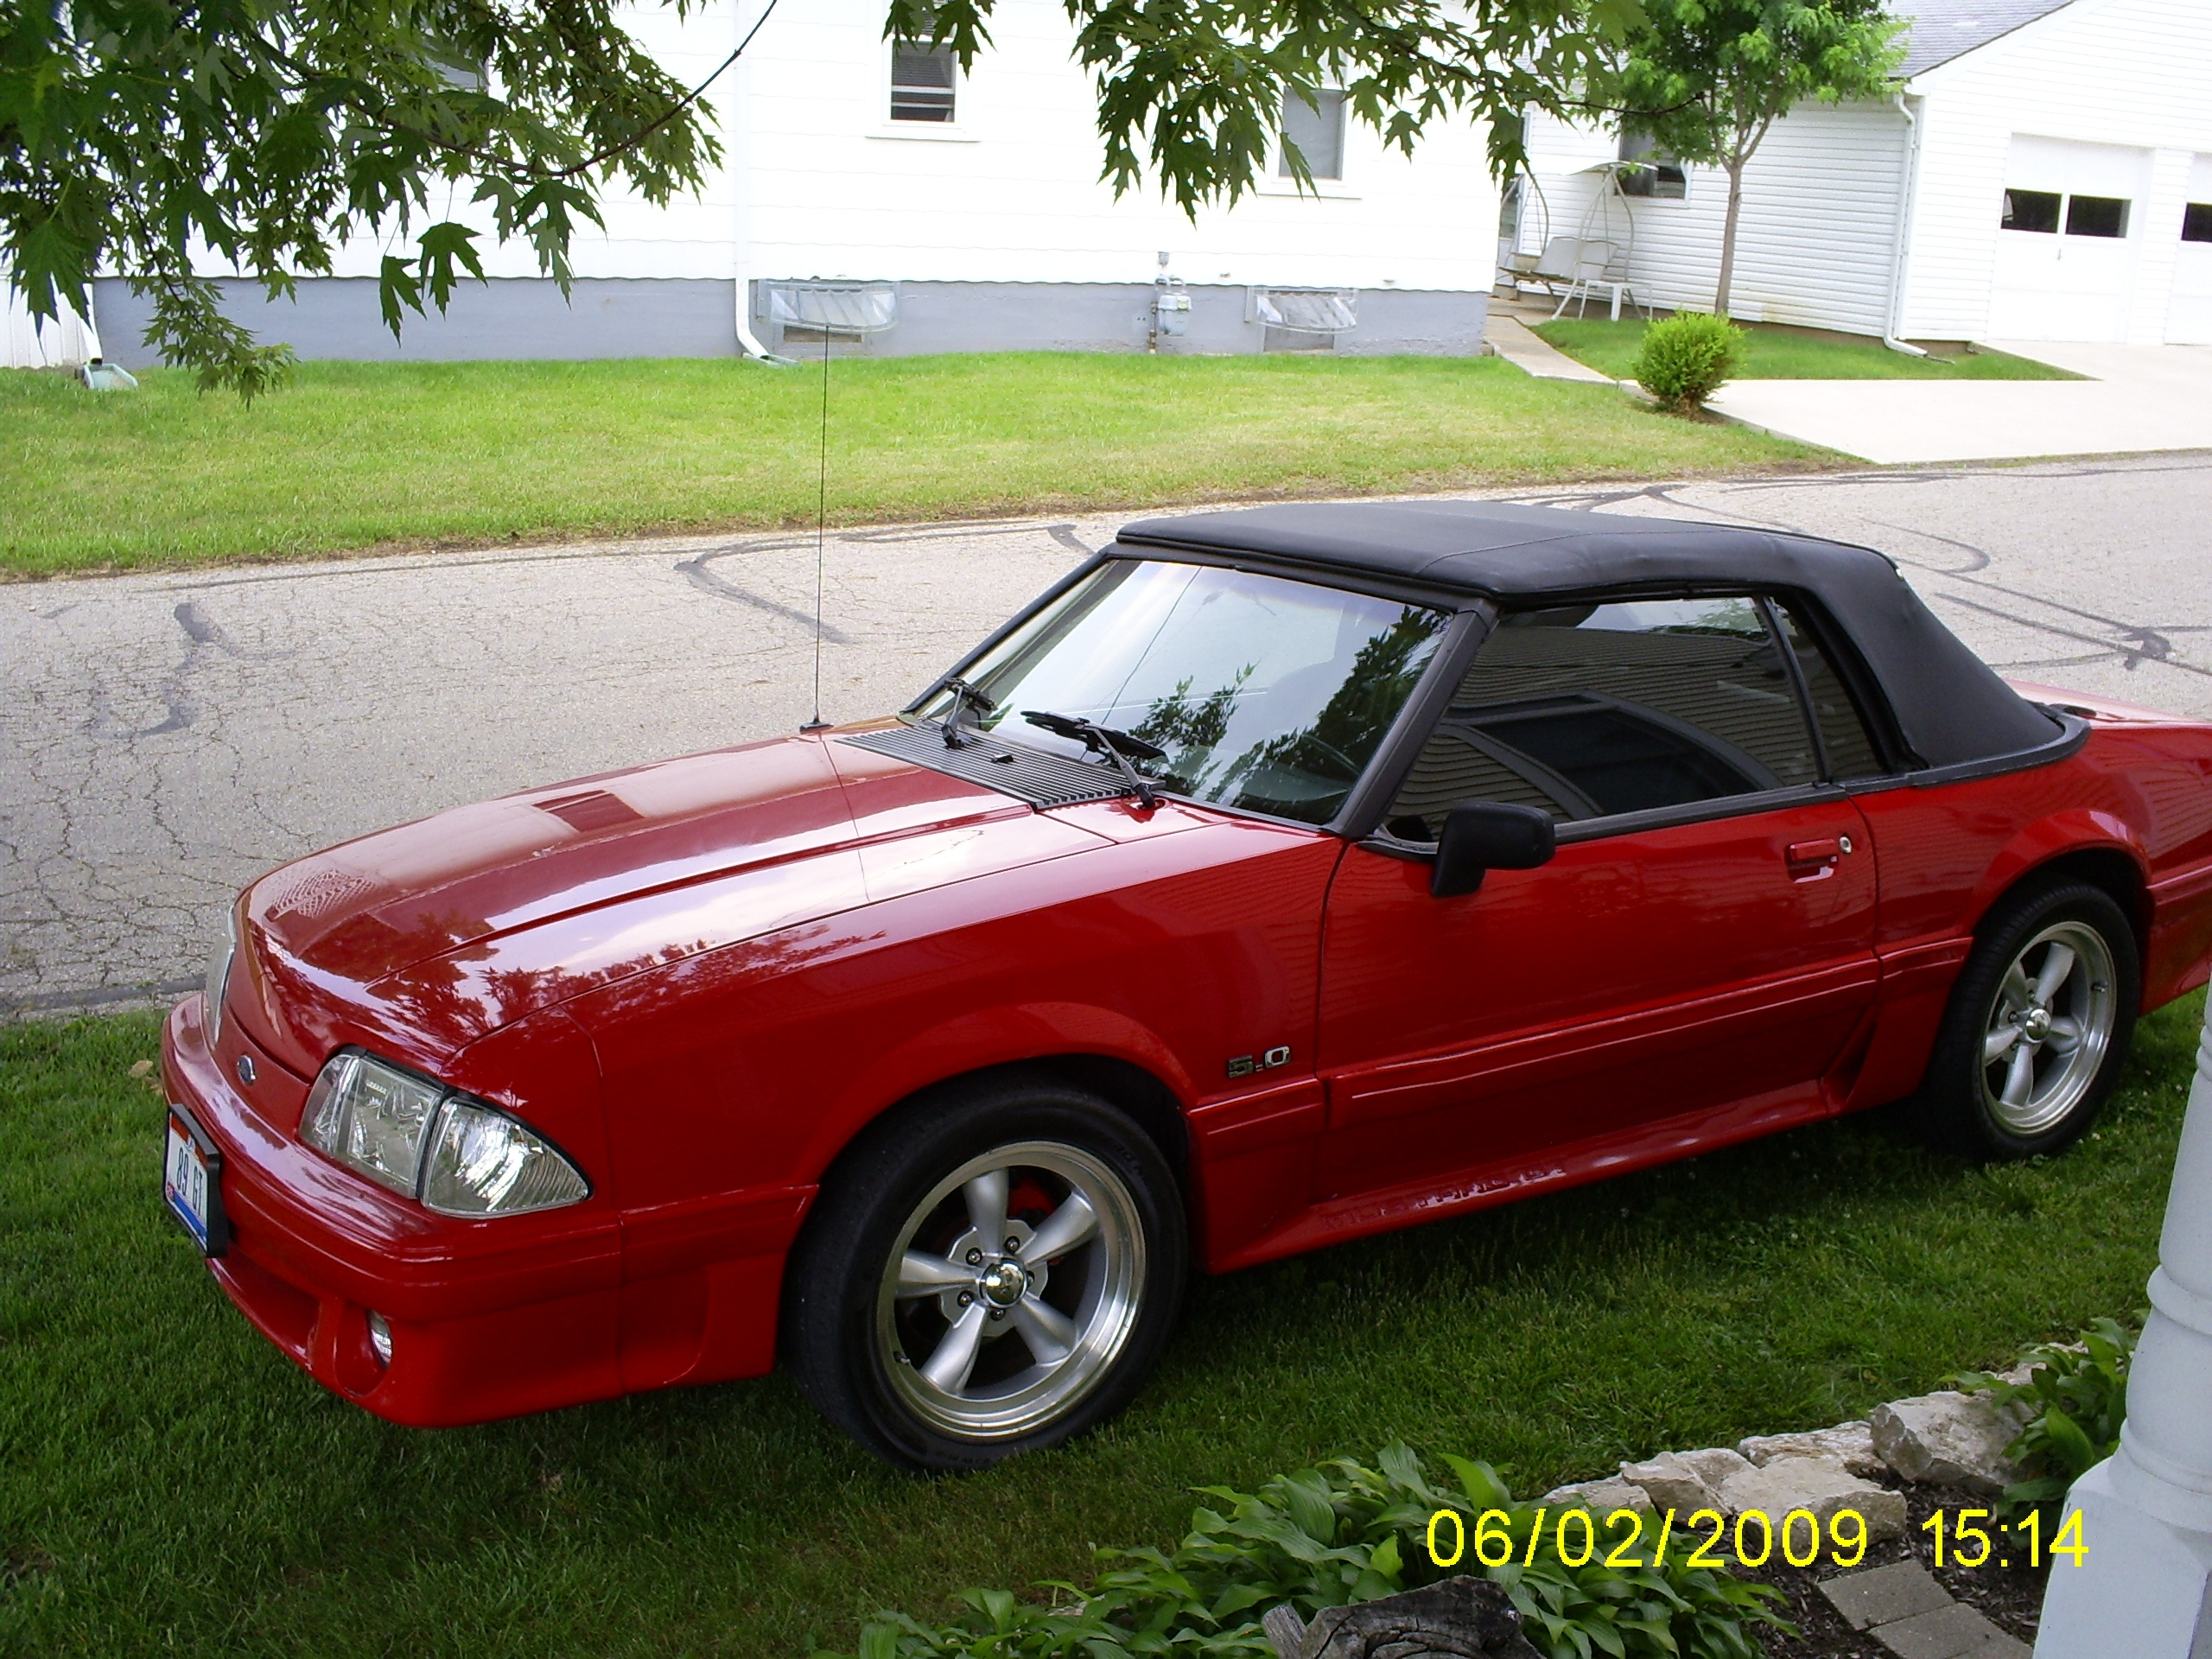 CoyotePunisher 1989 Ford Mustang